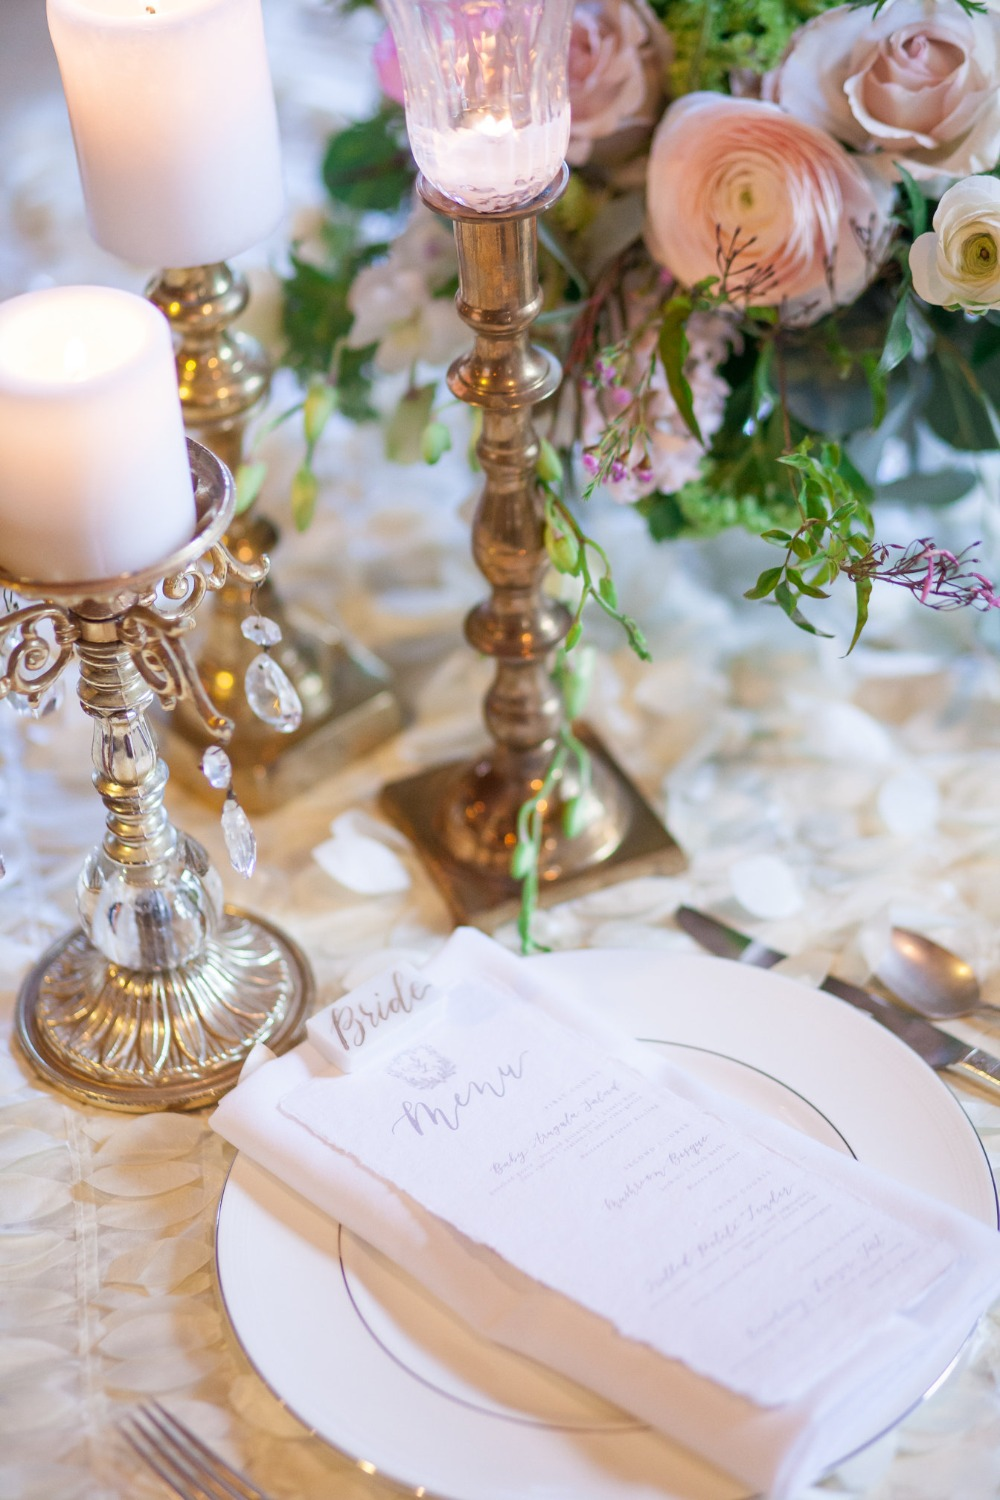 wedding china and glamorous place setting